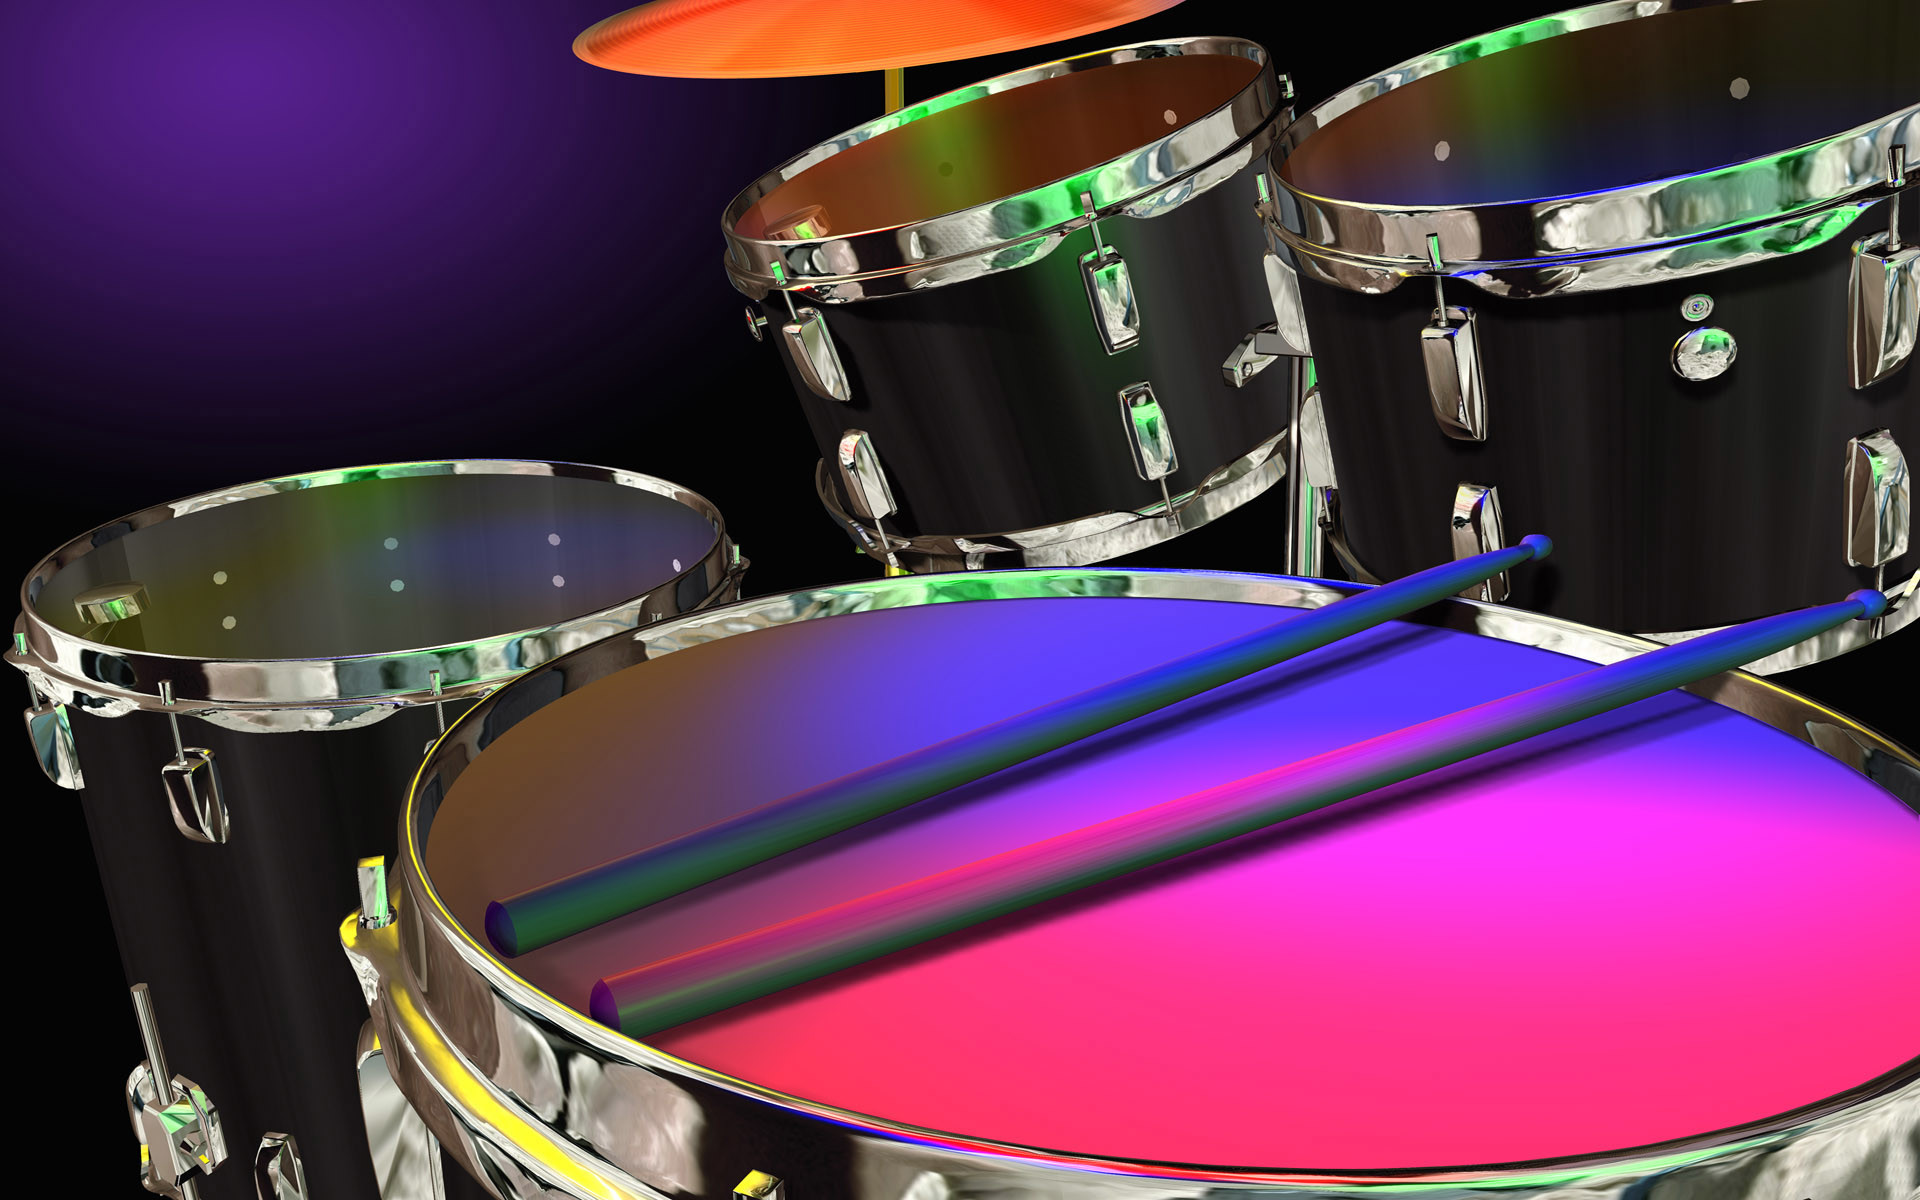 drum set widescreen computer background 1215